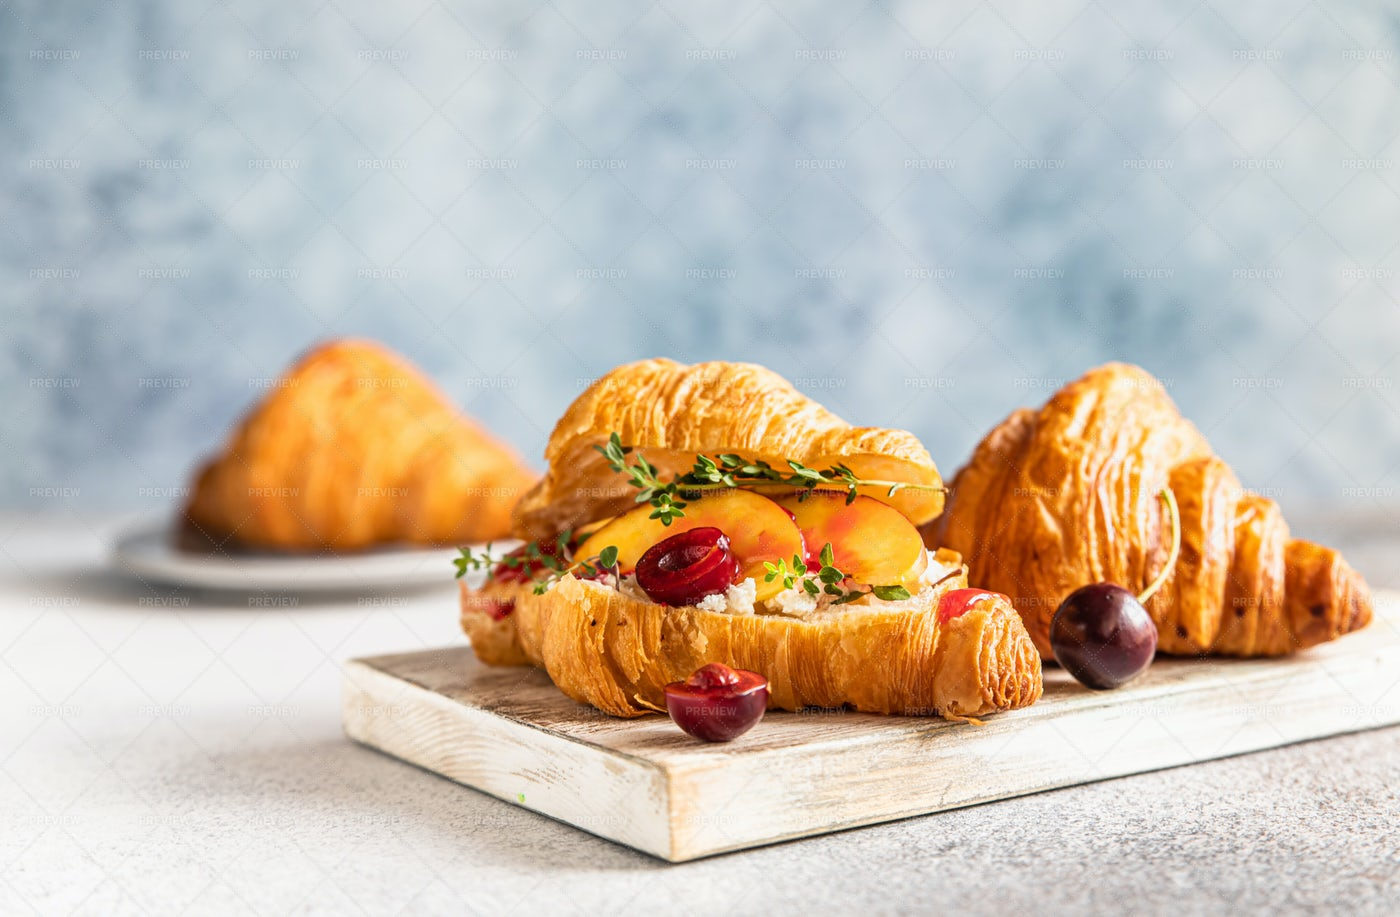 Croissant With Fruit And Berries: Stock Photos